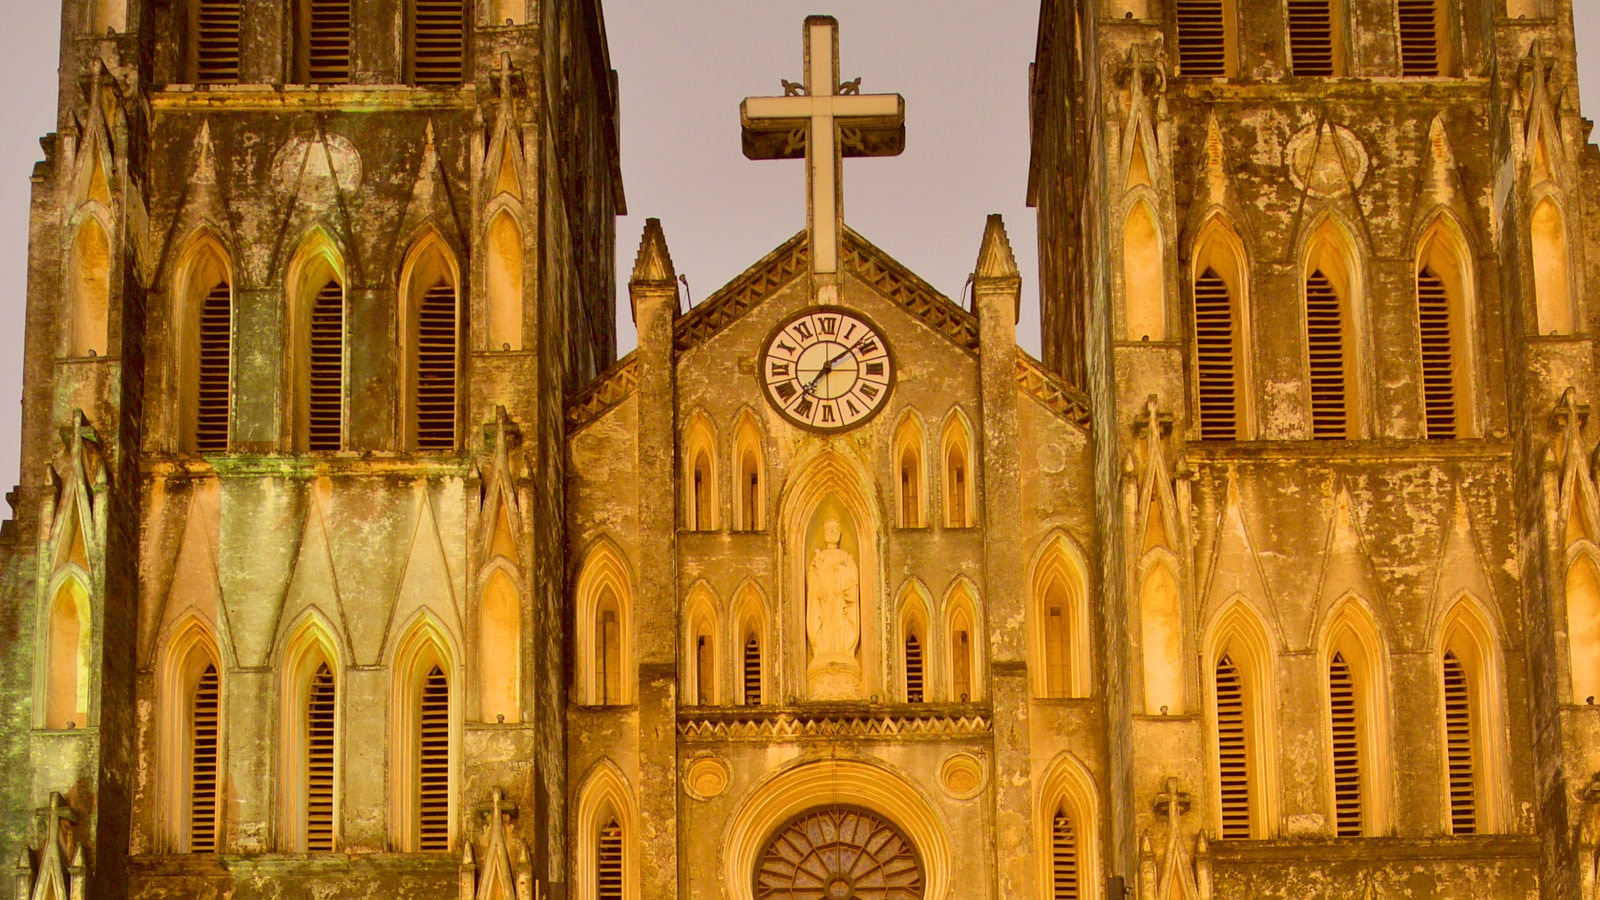 St. Joseph Cathedral featuring heritage elements, markets and heritage architecture